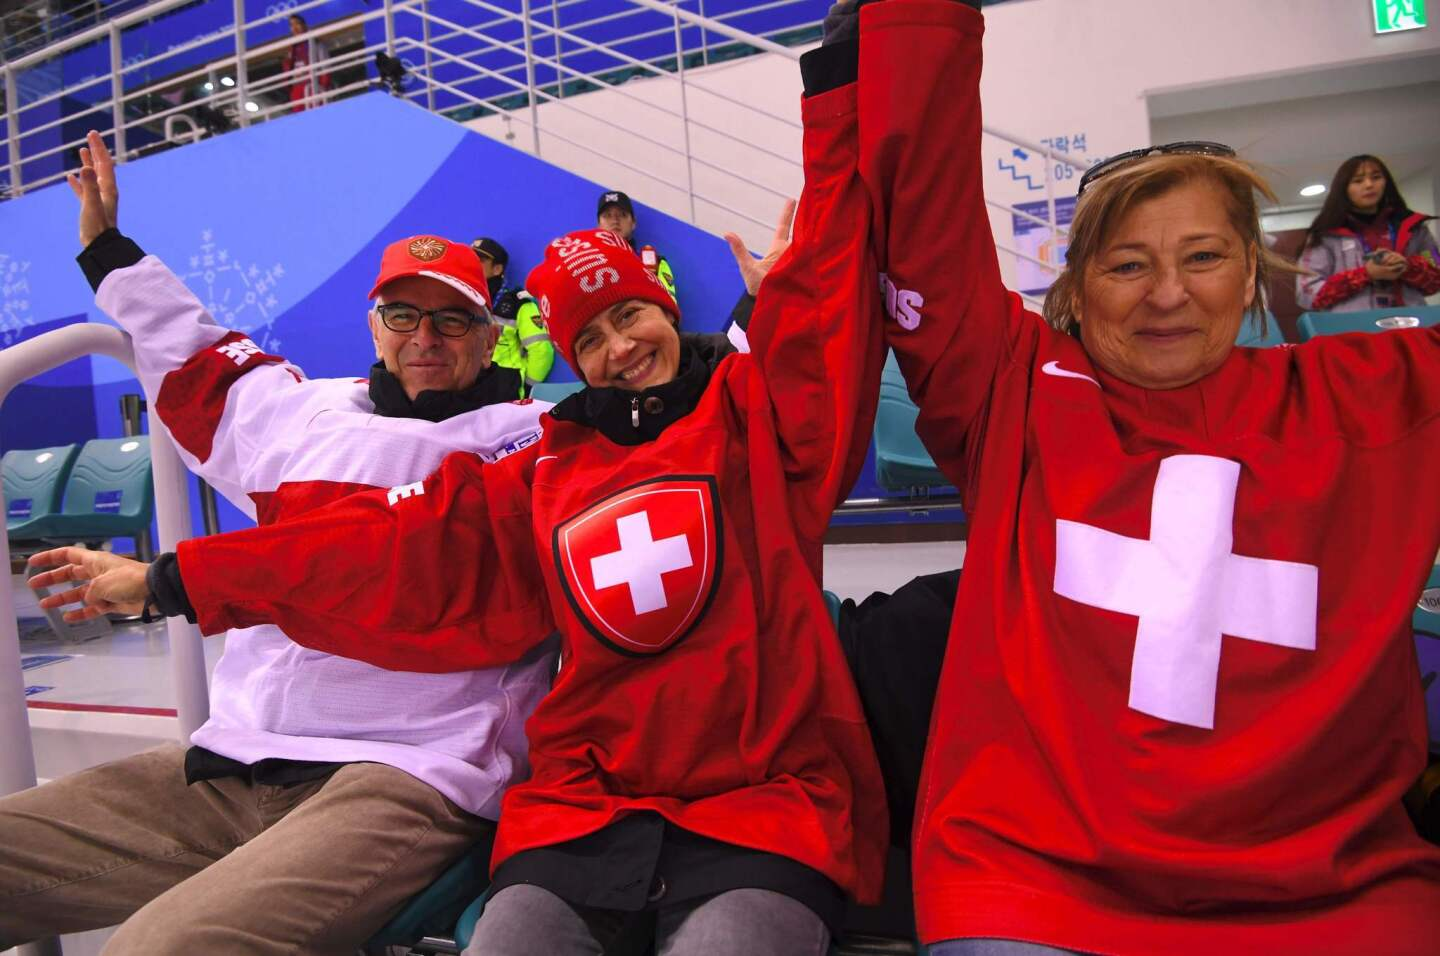 Switzerland's fans cheer in the women's quarter-final ice hockey match between the Olympic Athletes from Russia and Switzerland during the Pyeongchang 2018 Winter Olympic Games at the Kwandong Hockey Centre in Gangneung on February 17, 2018. / AFP PHOTO / Jung Yeon-jeJUNG YEON-JE/AFP/Getty Images ** OUTS - ELSENT, FPG, CM - OUTS * NM, PH, VA if sourced by CT, LA or MoD **